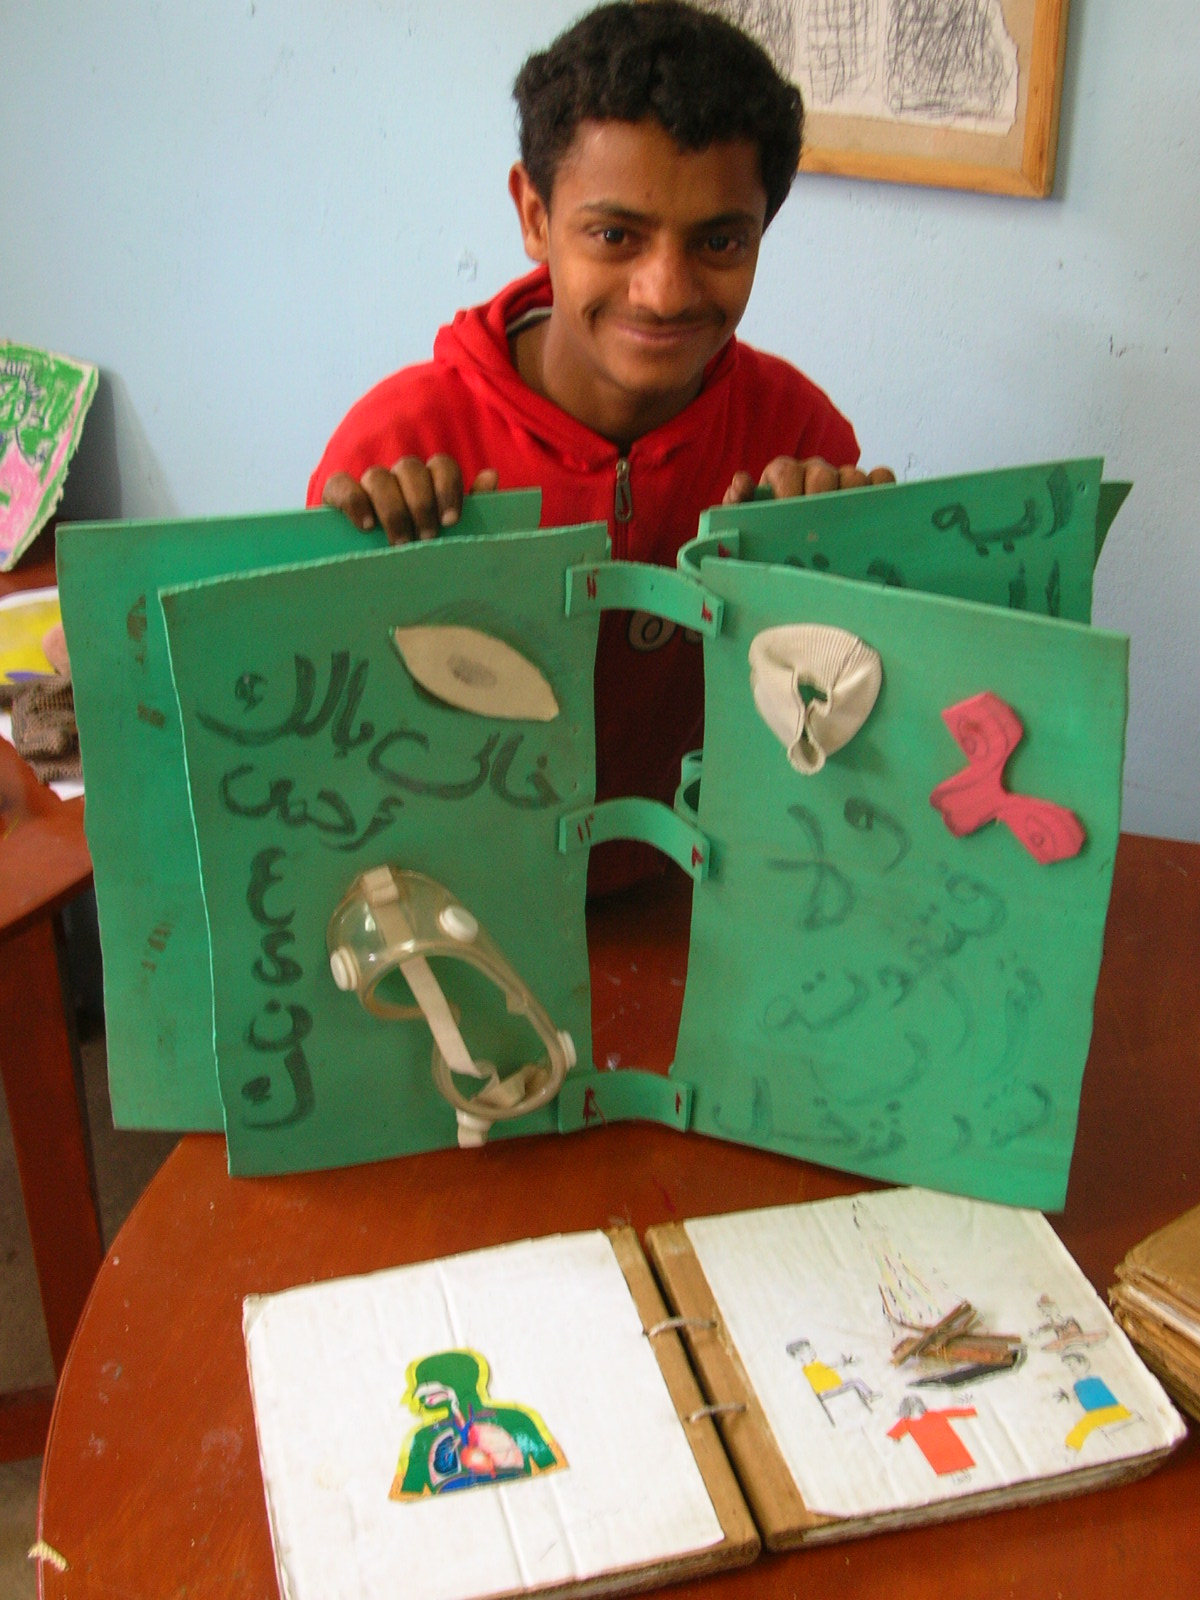 Recycling Curriculum - Customized Recycling Curriculum, utilizing the Montessori method in Cairo, Egypt